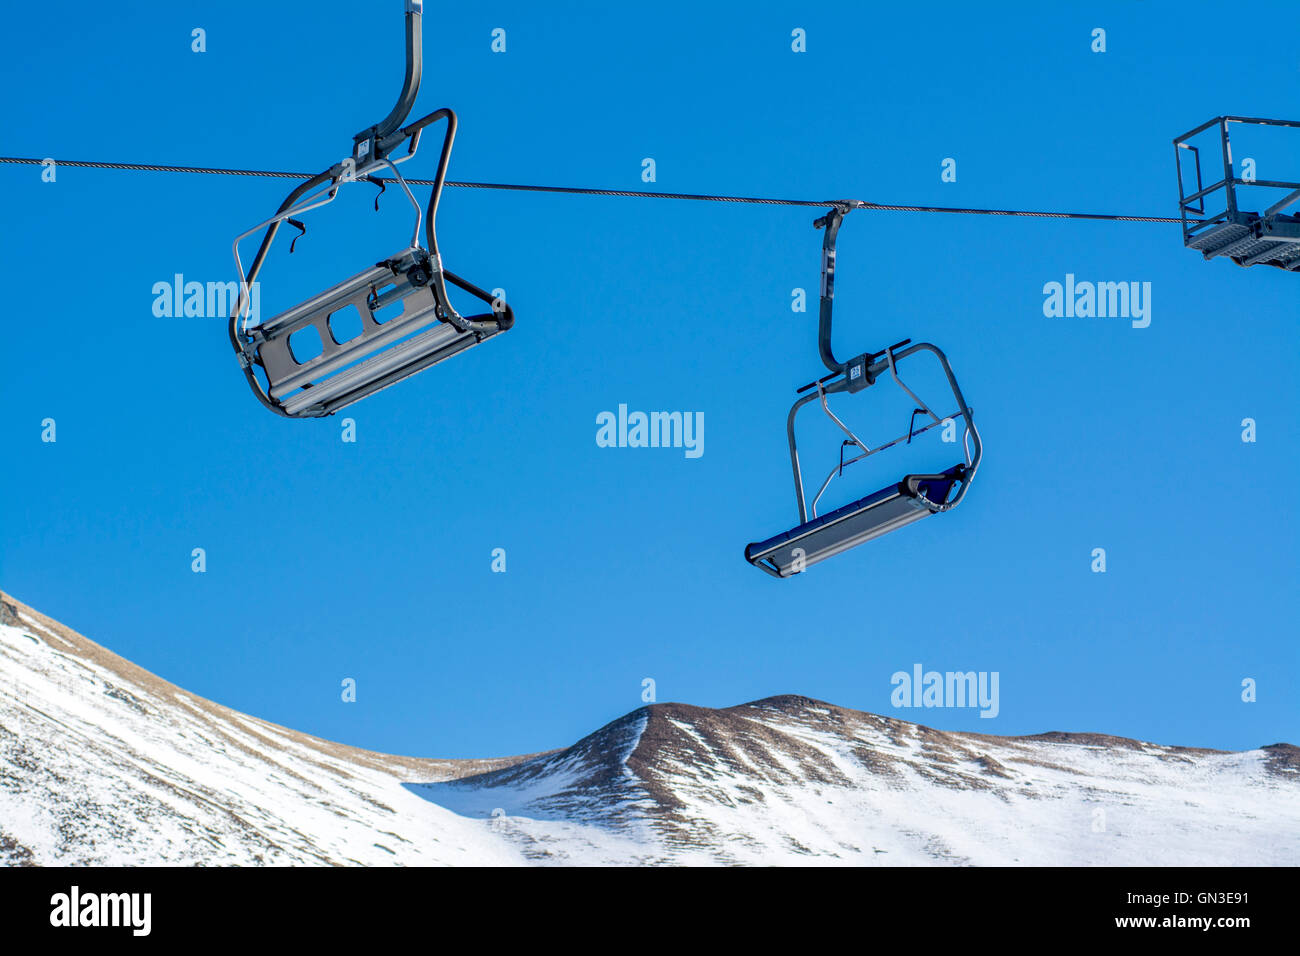 Chairlift and lack of snow in a ski resort in France - Stock Image